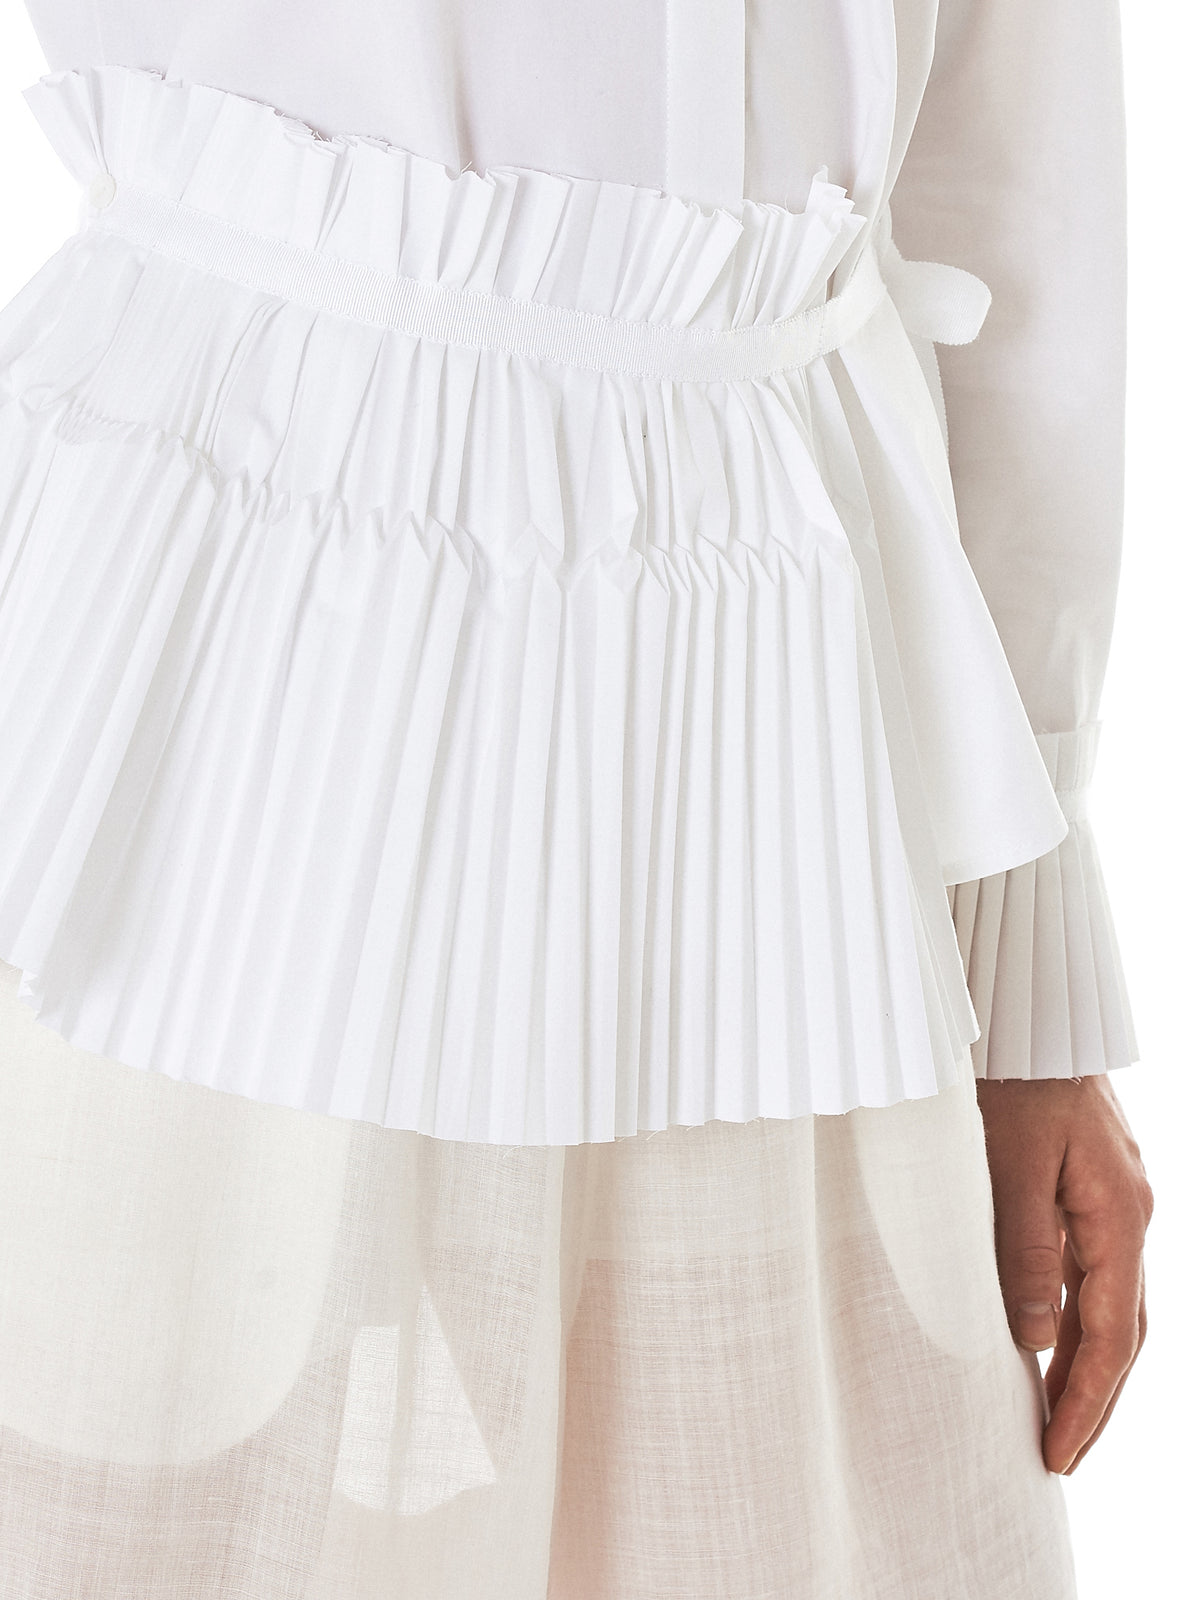 Shanshan Ruan Pleat Shirt - Hlorenzo Detail 2